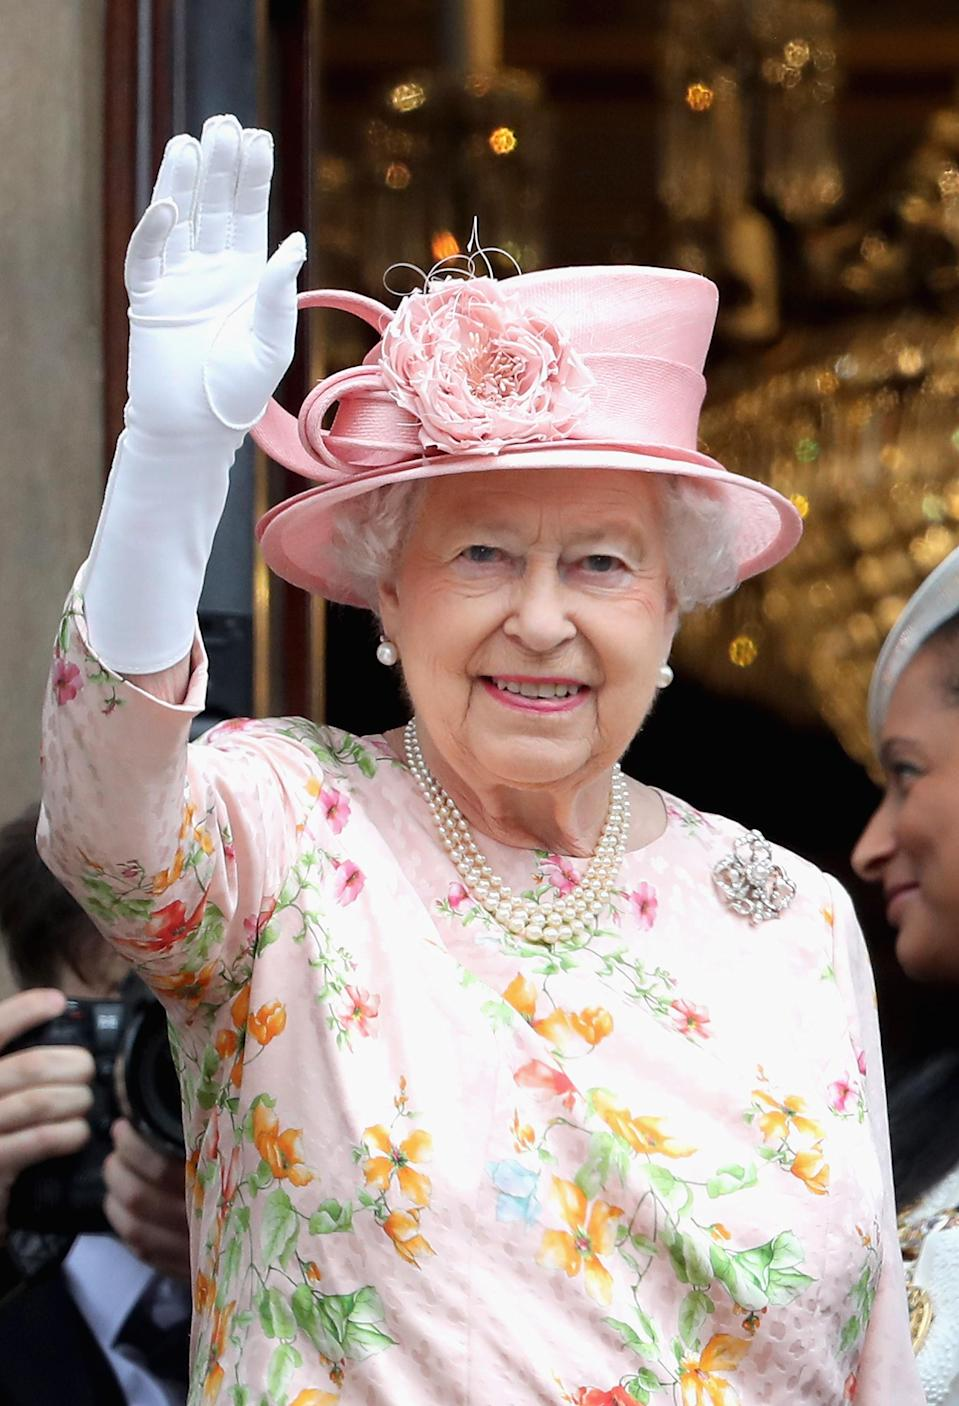 The Queen has a fake hand she was gifted. [Photo: Getty Images]